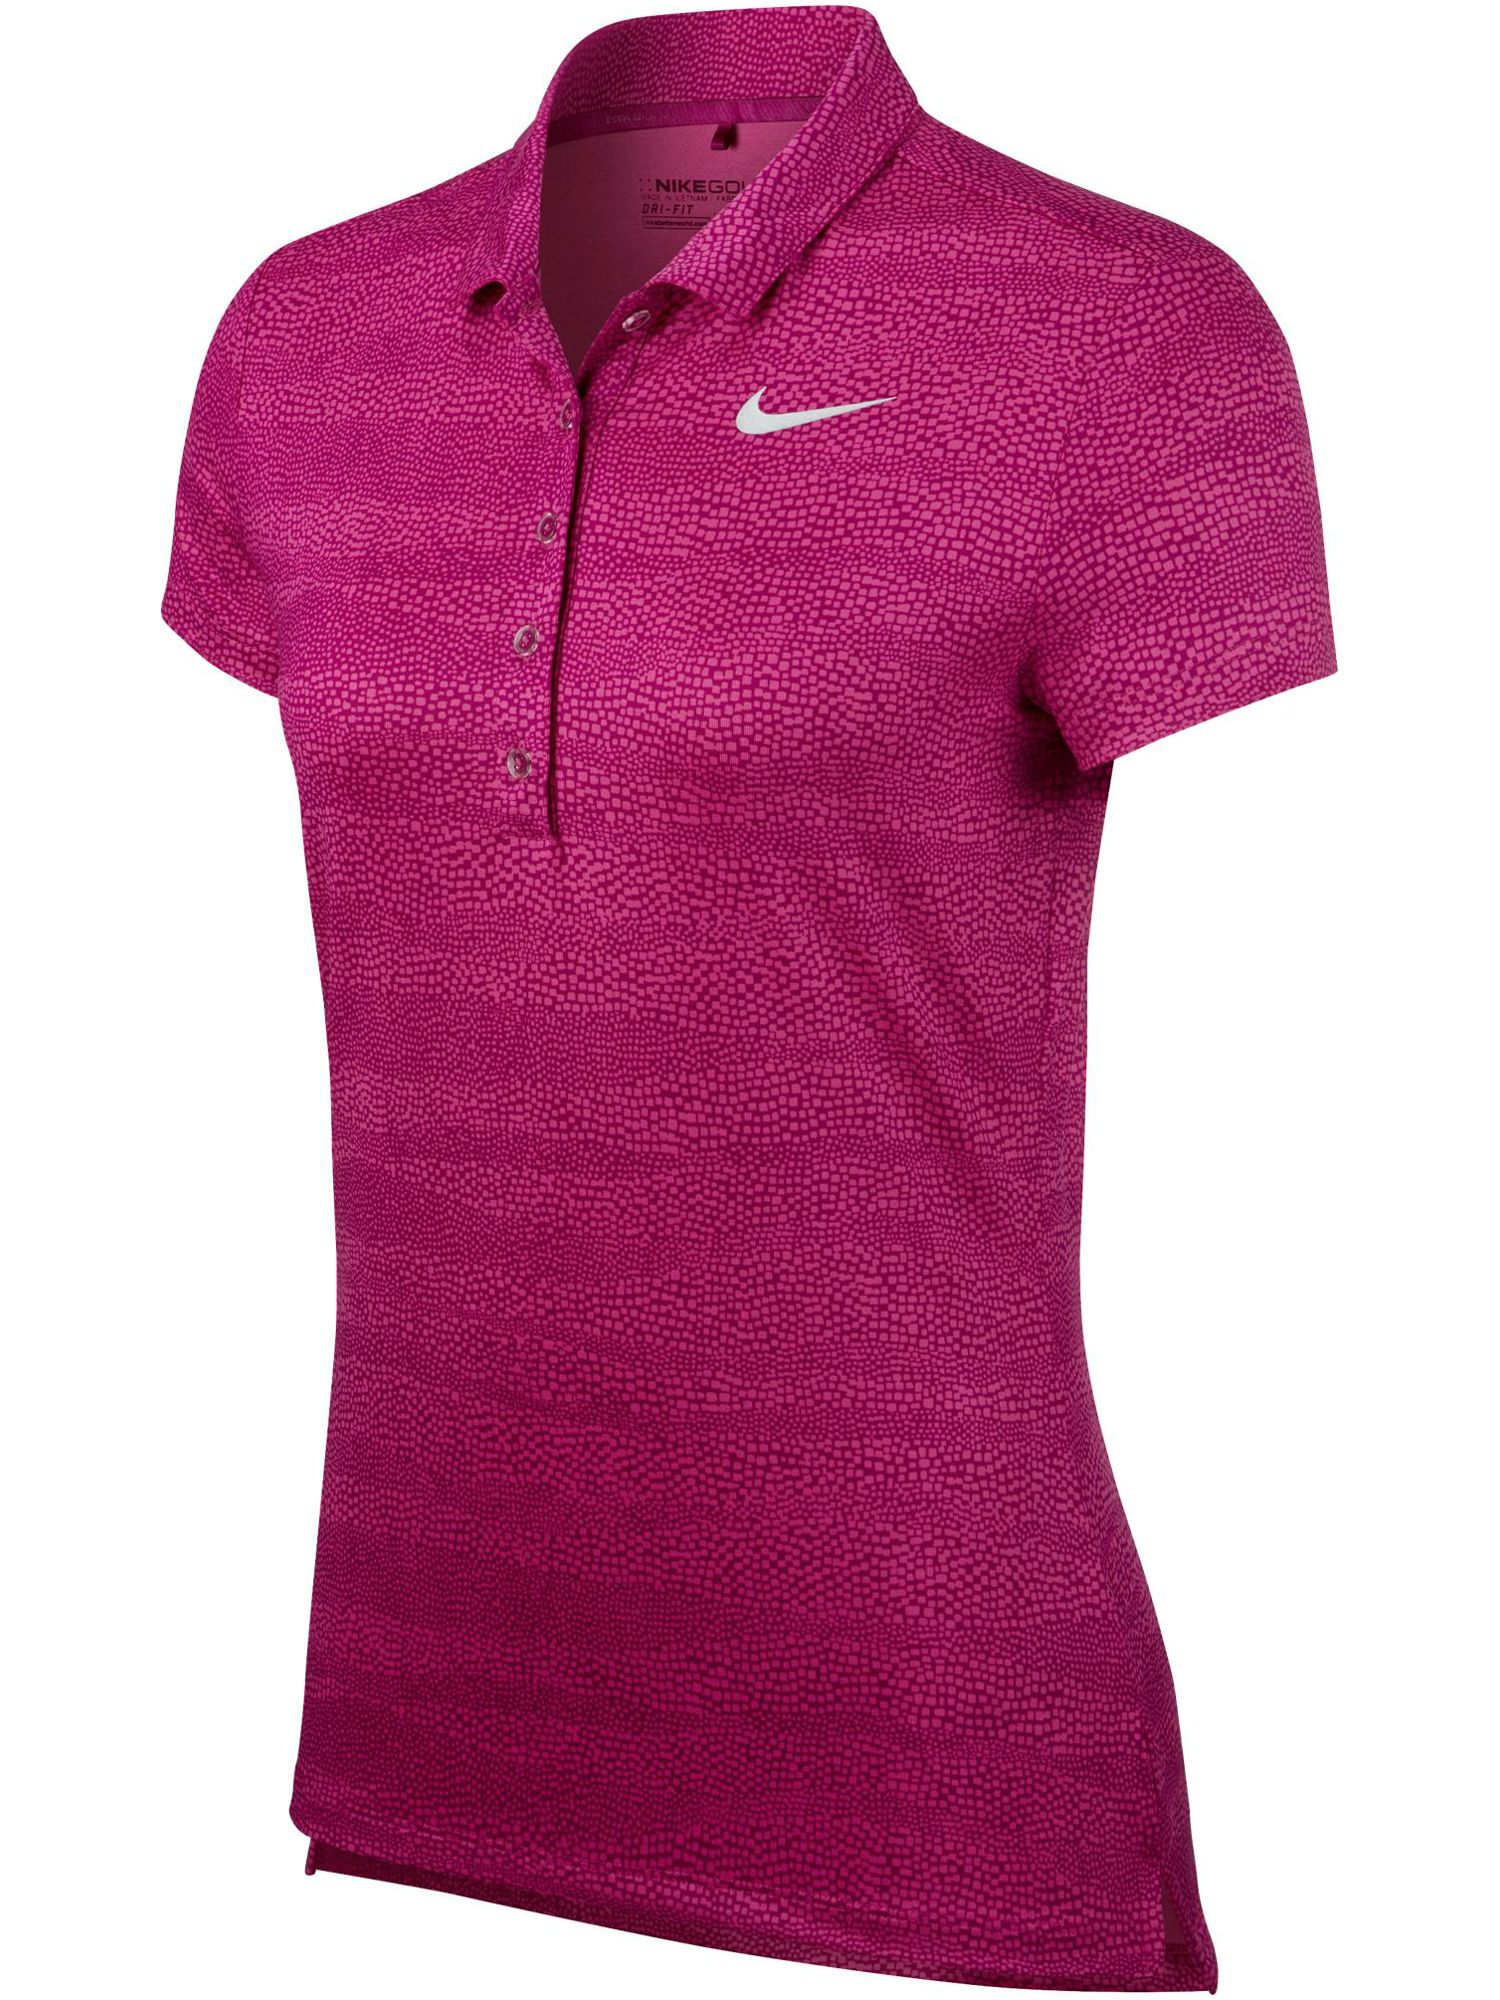 Nike Golf Precision Zebra Print Golf Polo, Red